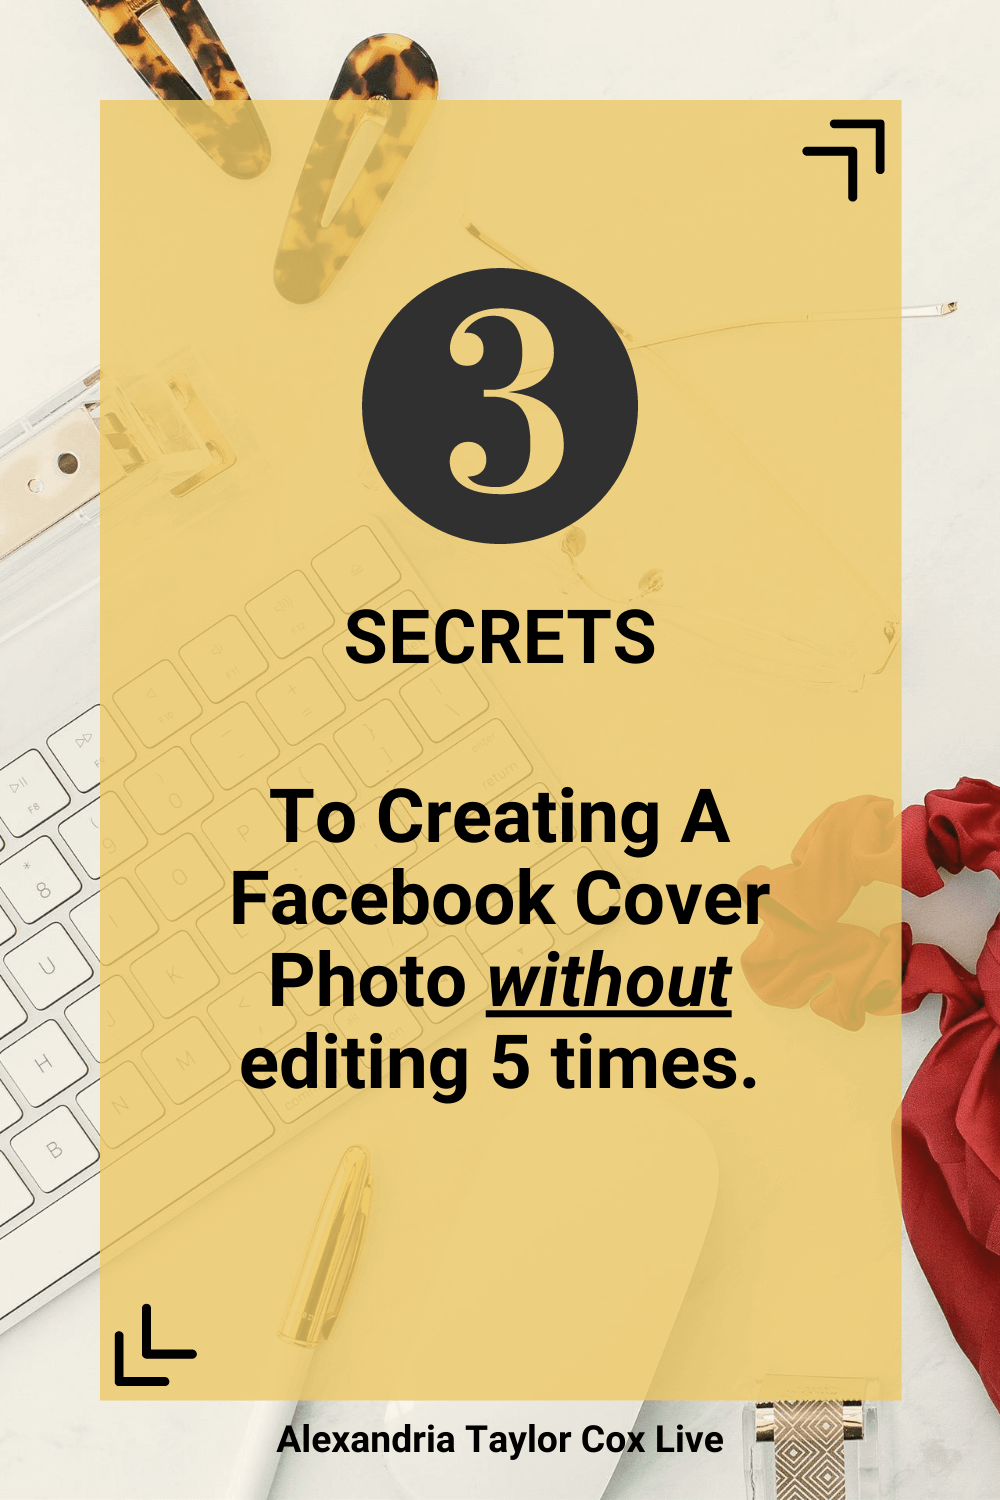 3 secrets to creating a Facebook cover photo without editing 5 times